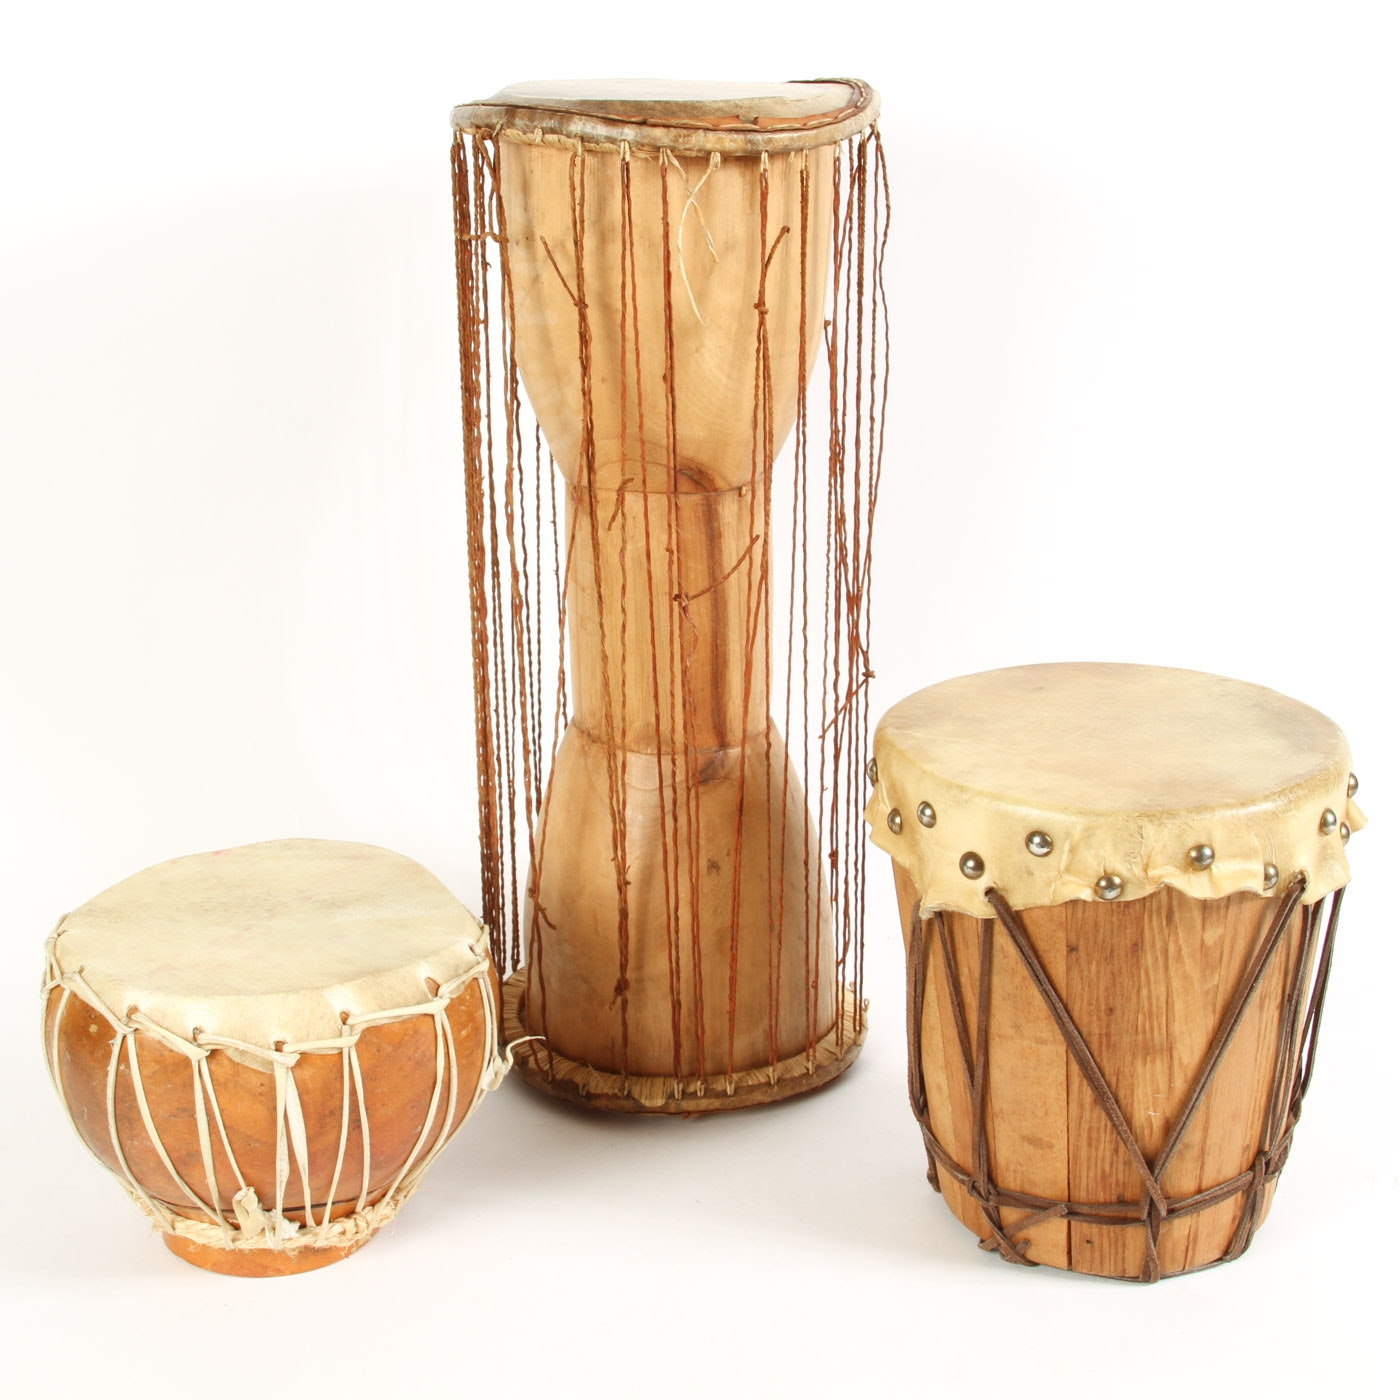 African Style Talking Drum and Hand Drums